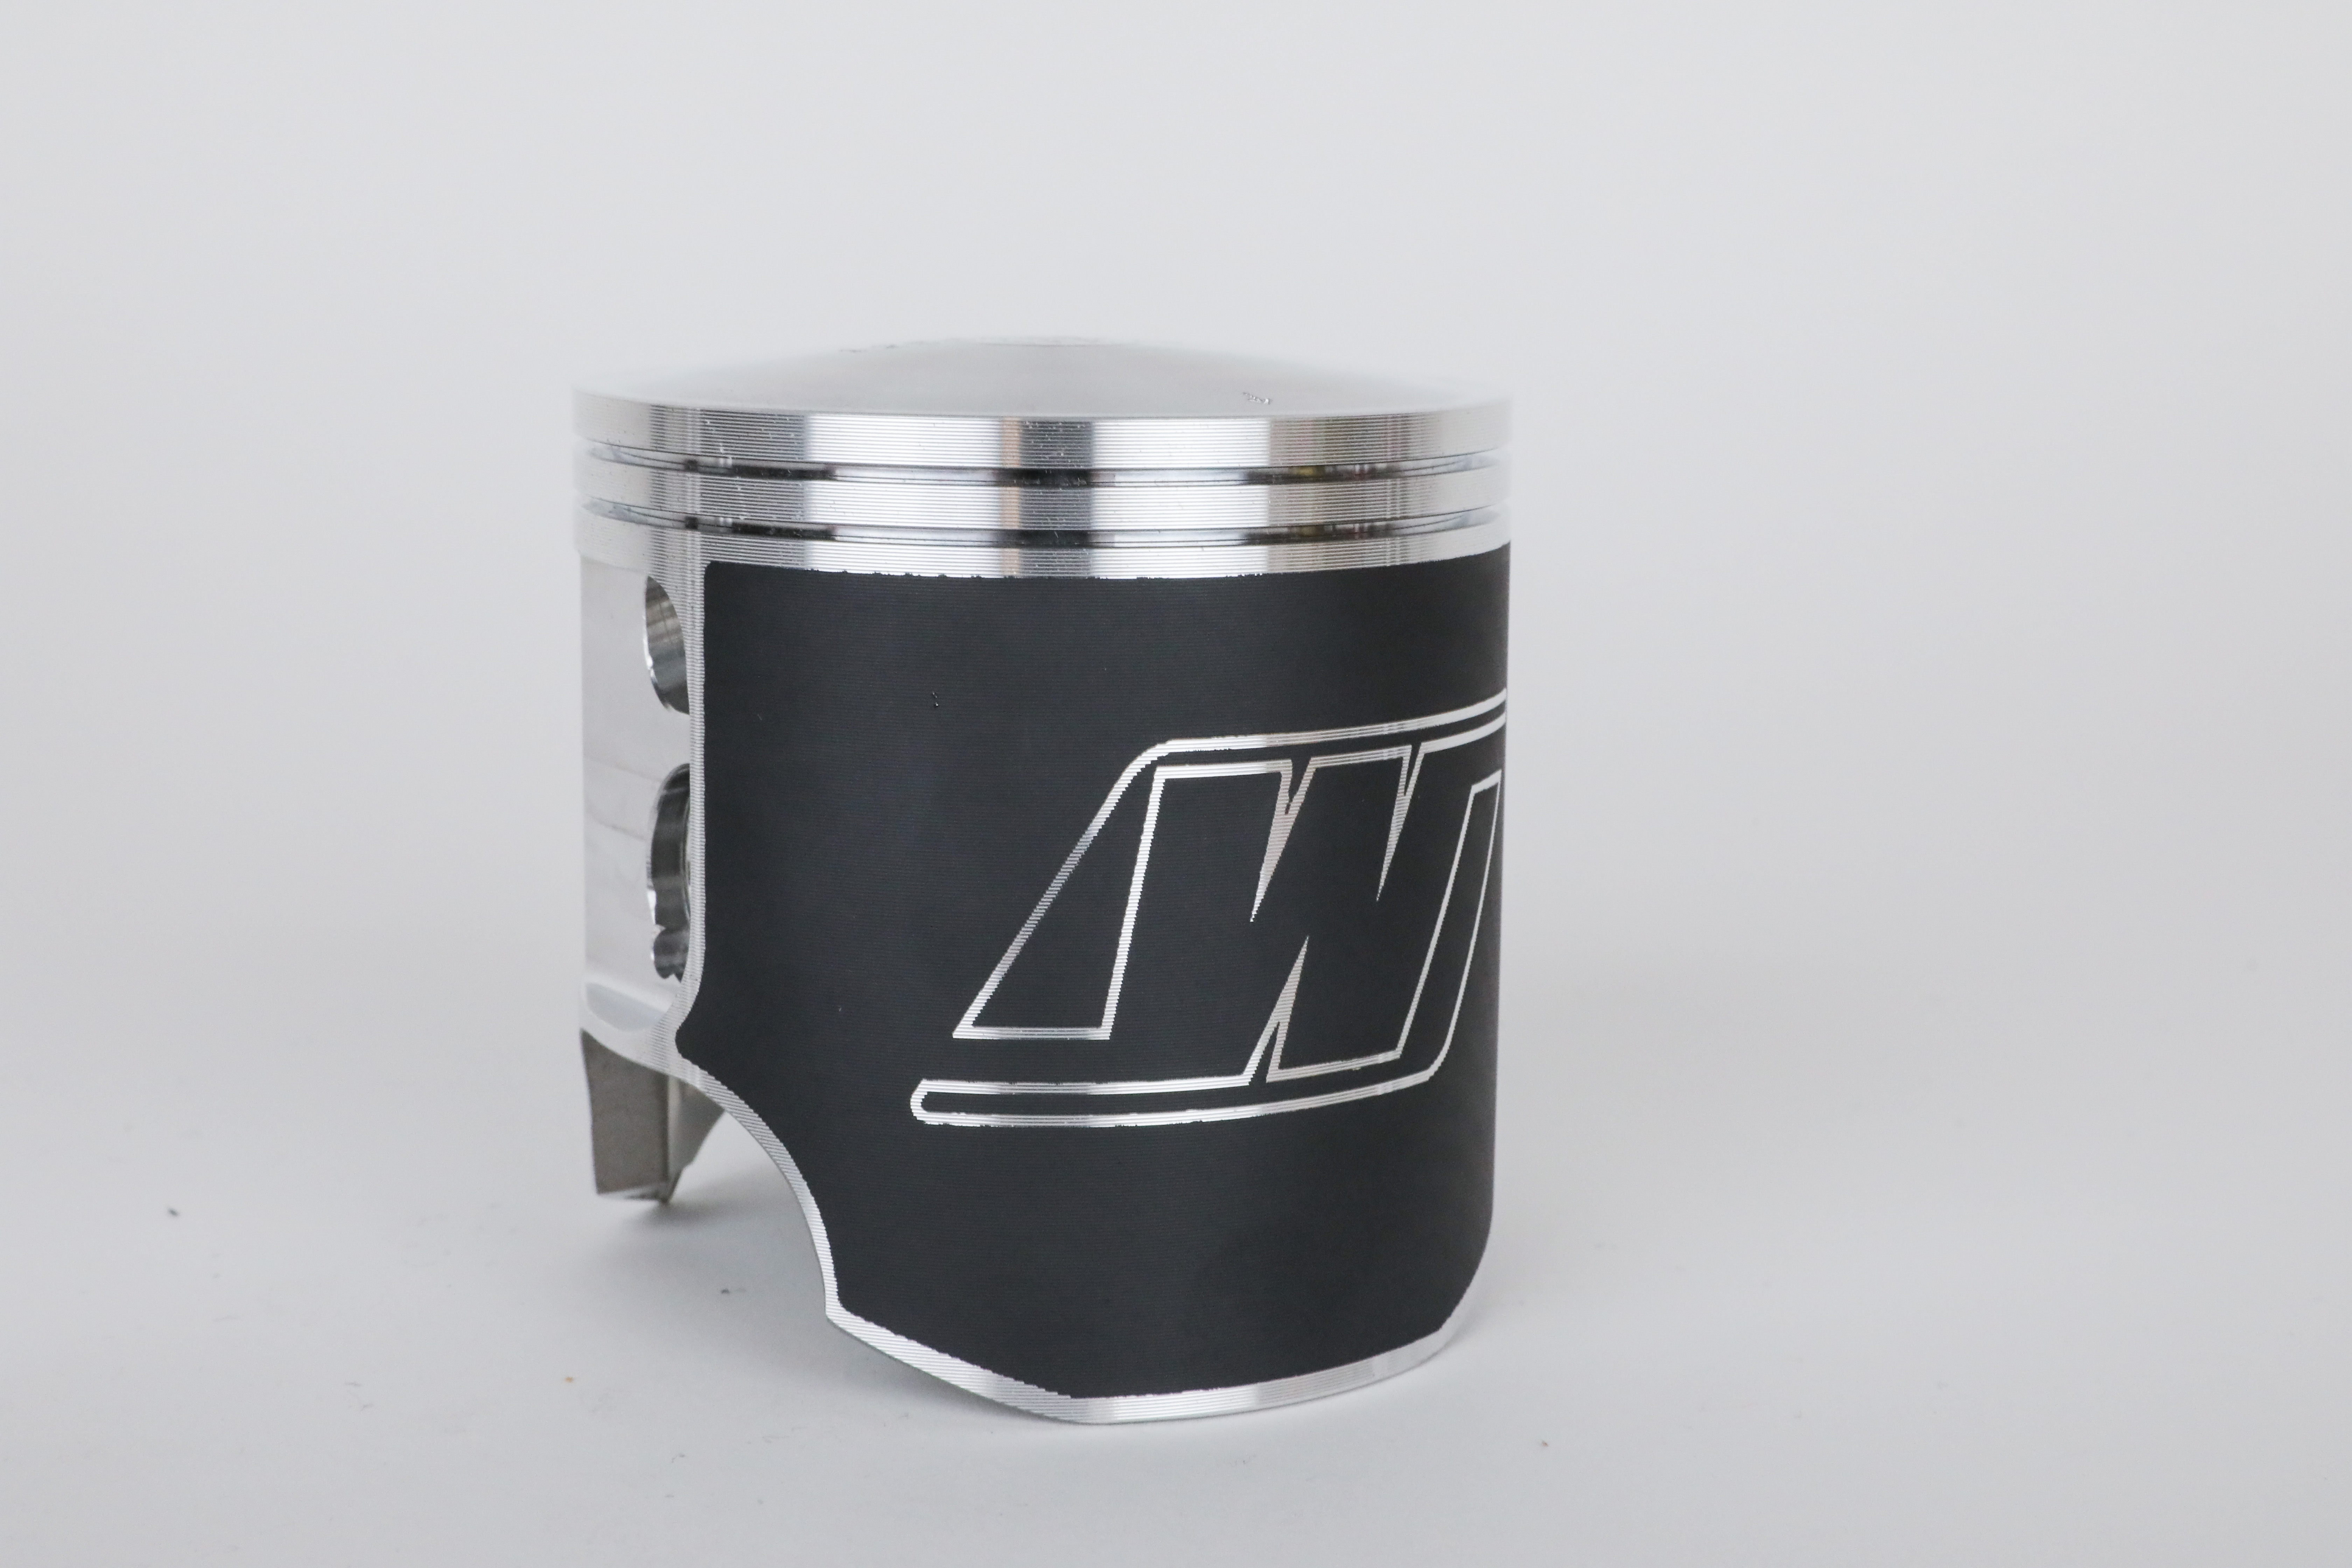 single ring vs two ring 2 stroke pistons which one is better